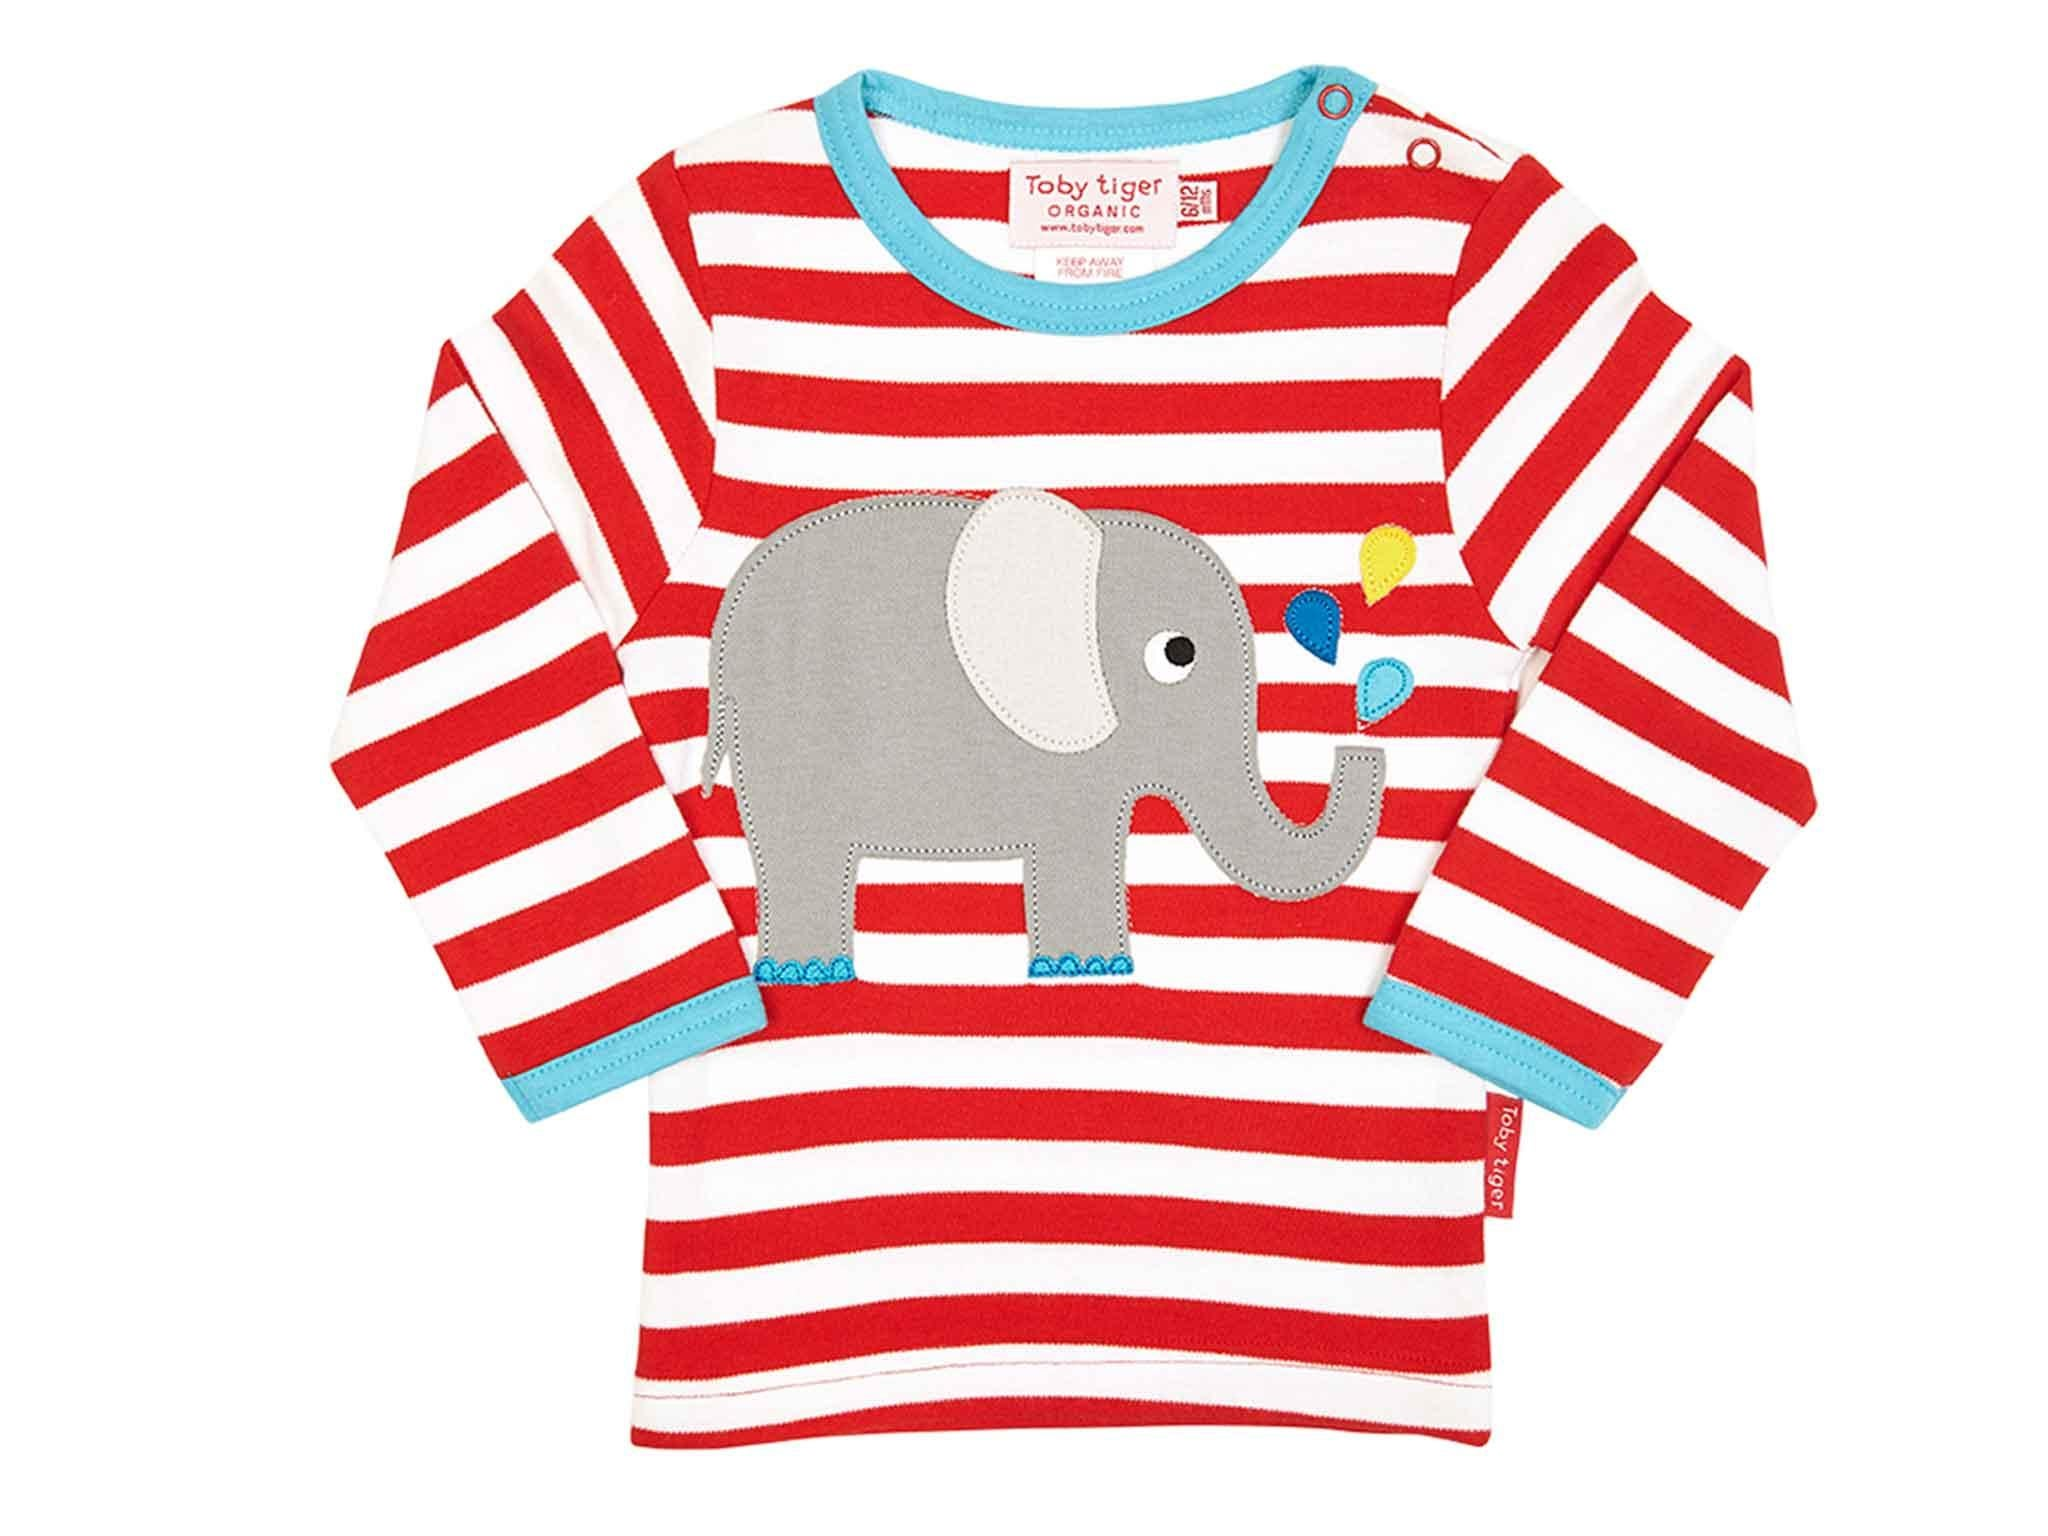 15 best sustainable and organic kids' clothing brands | The Independent